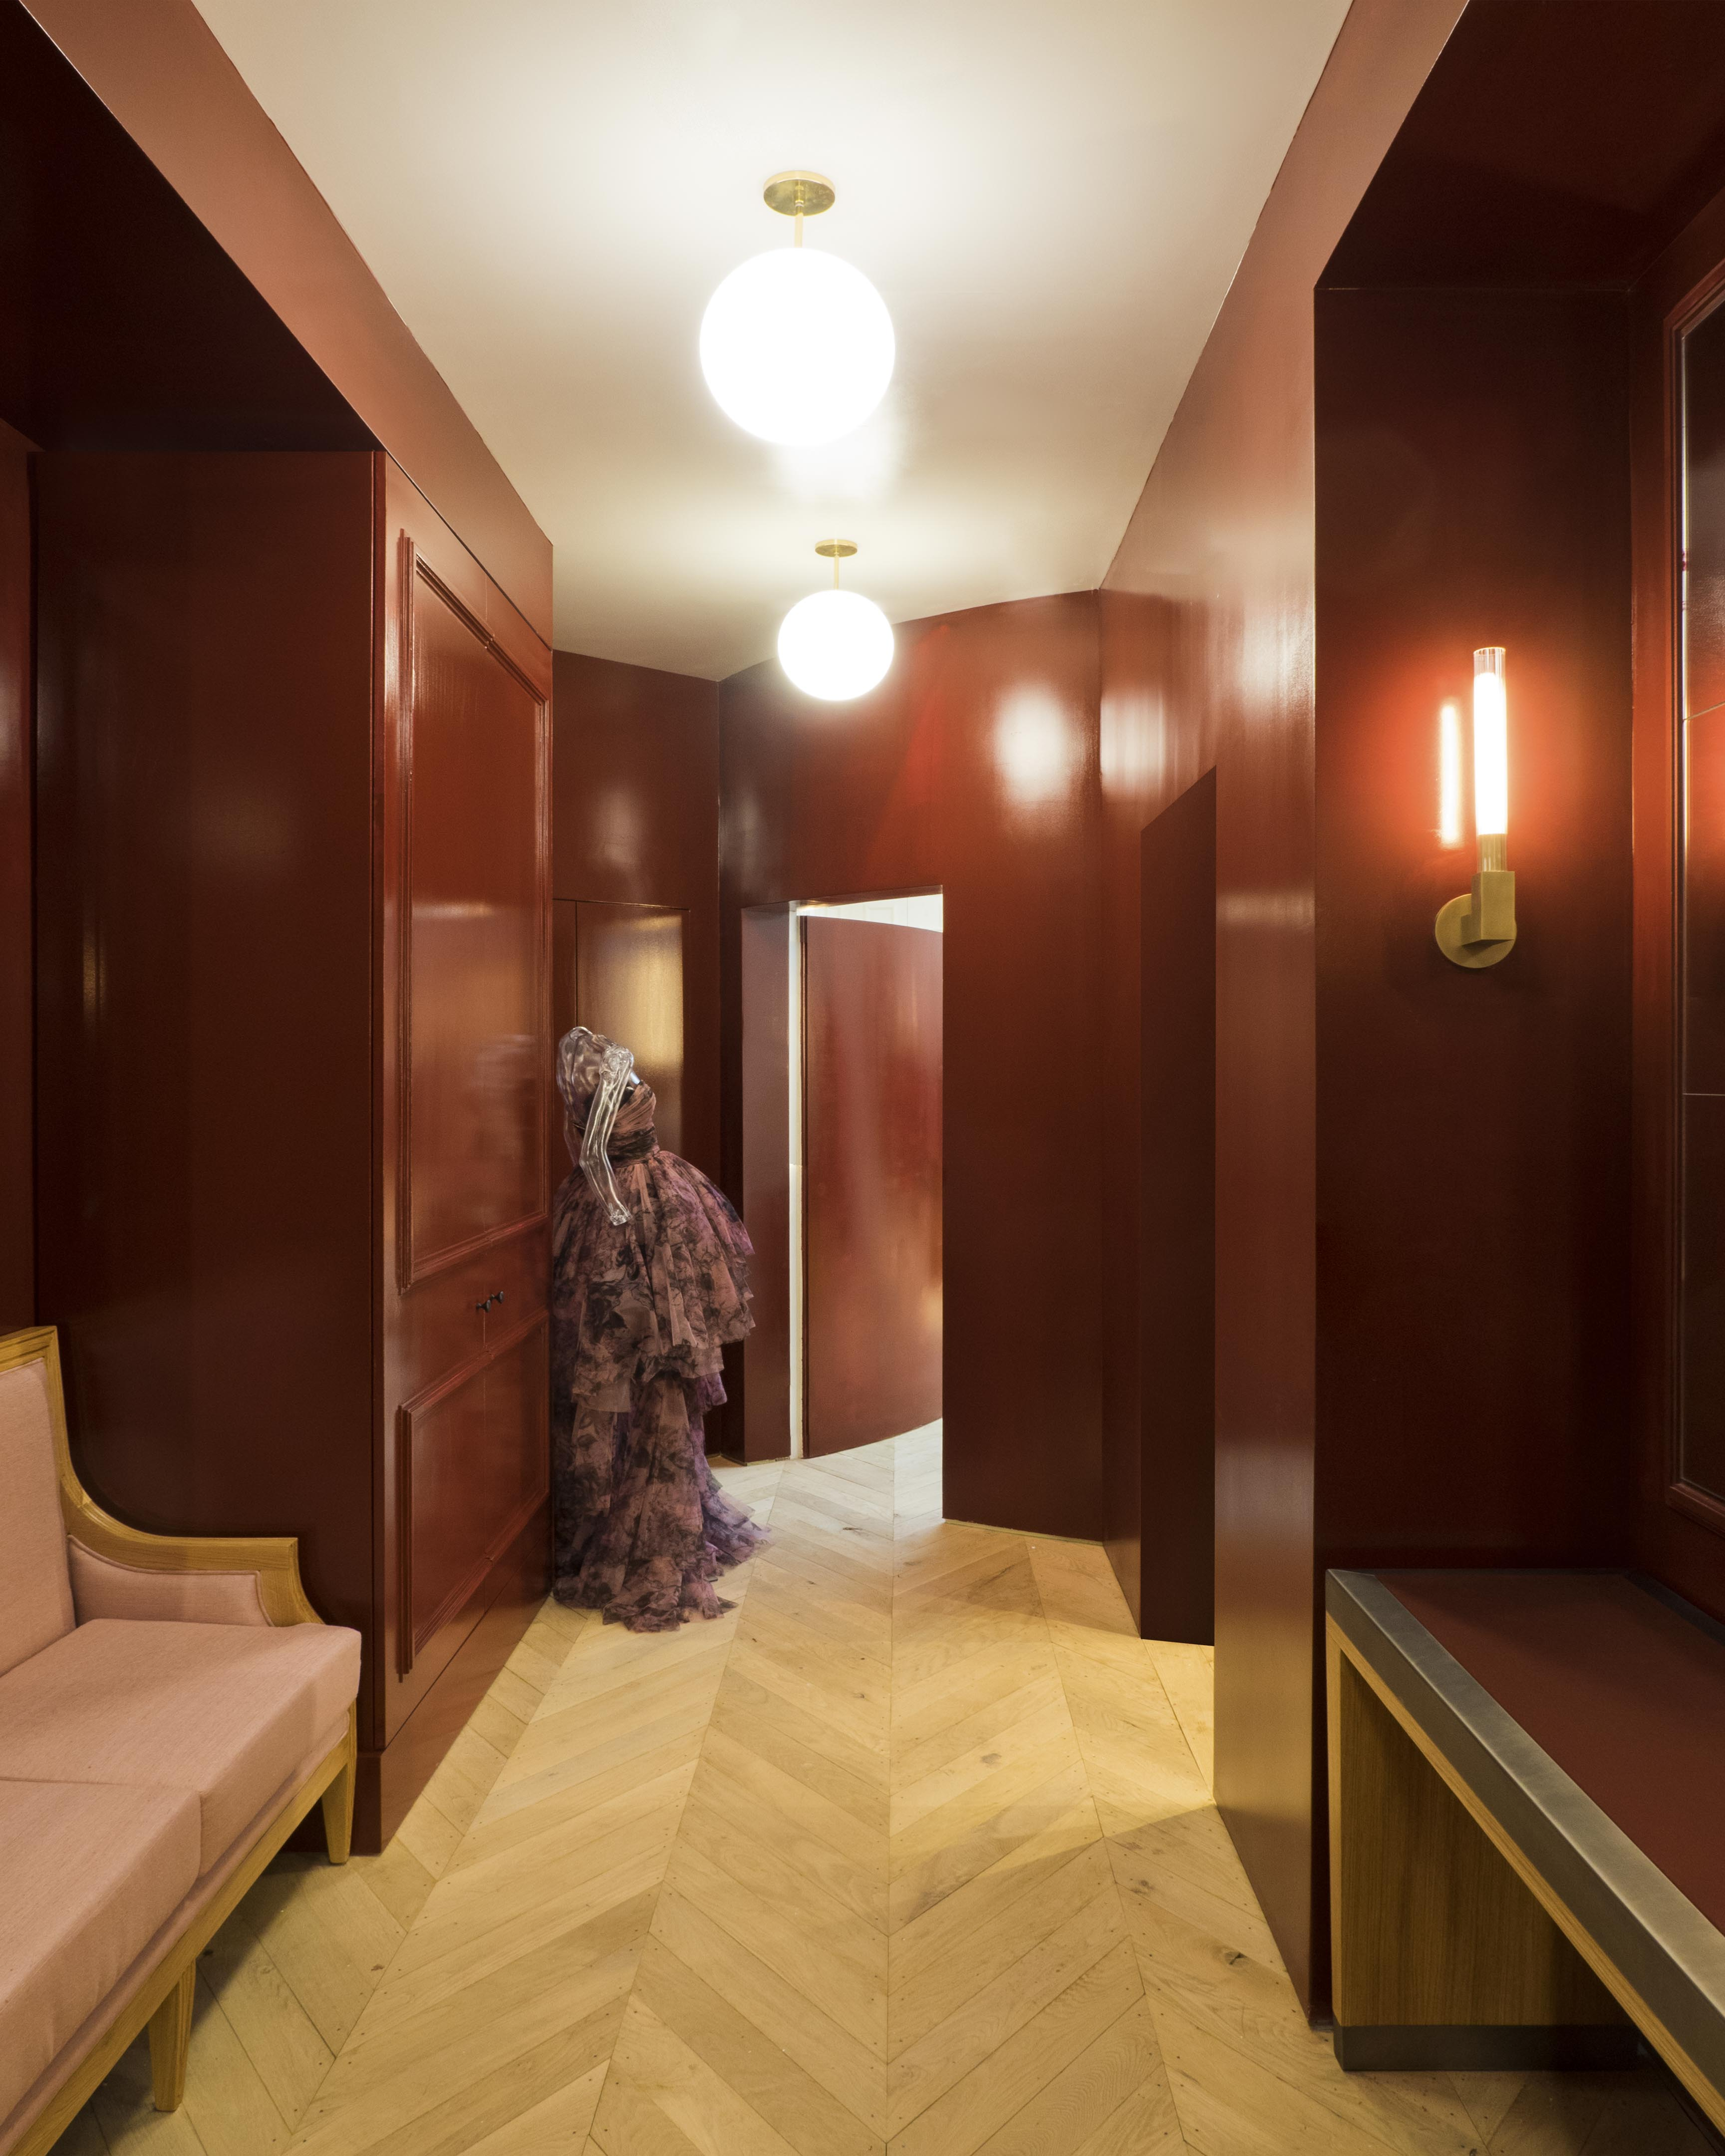 Redemption Opens NY Flagship Designed by Luca Guadagnino